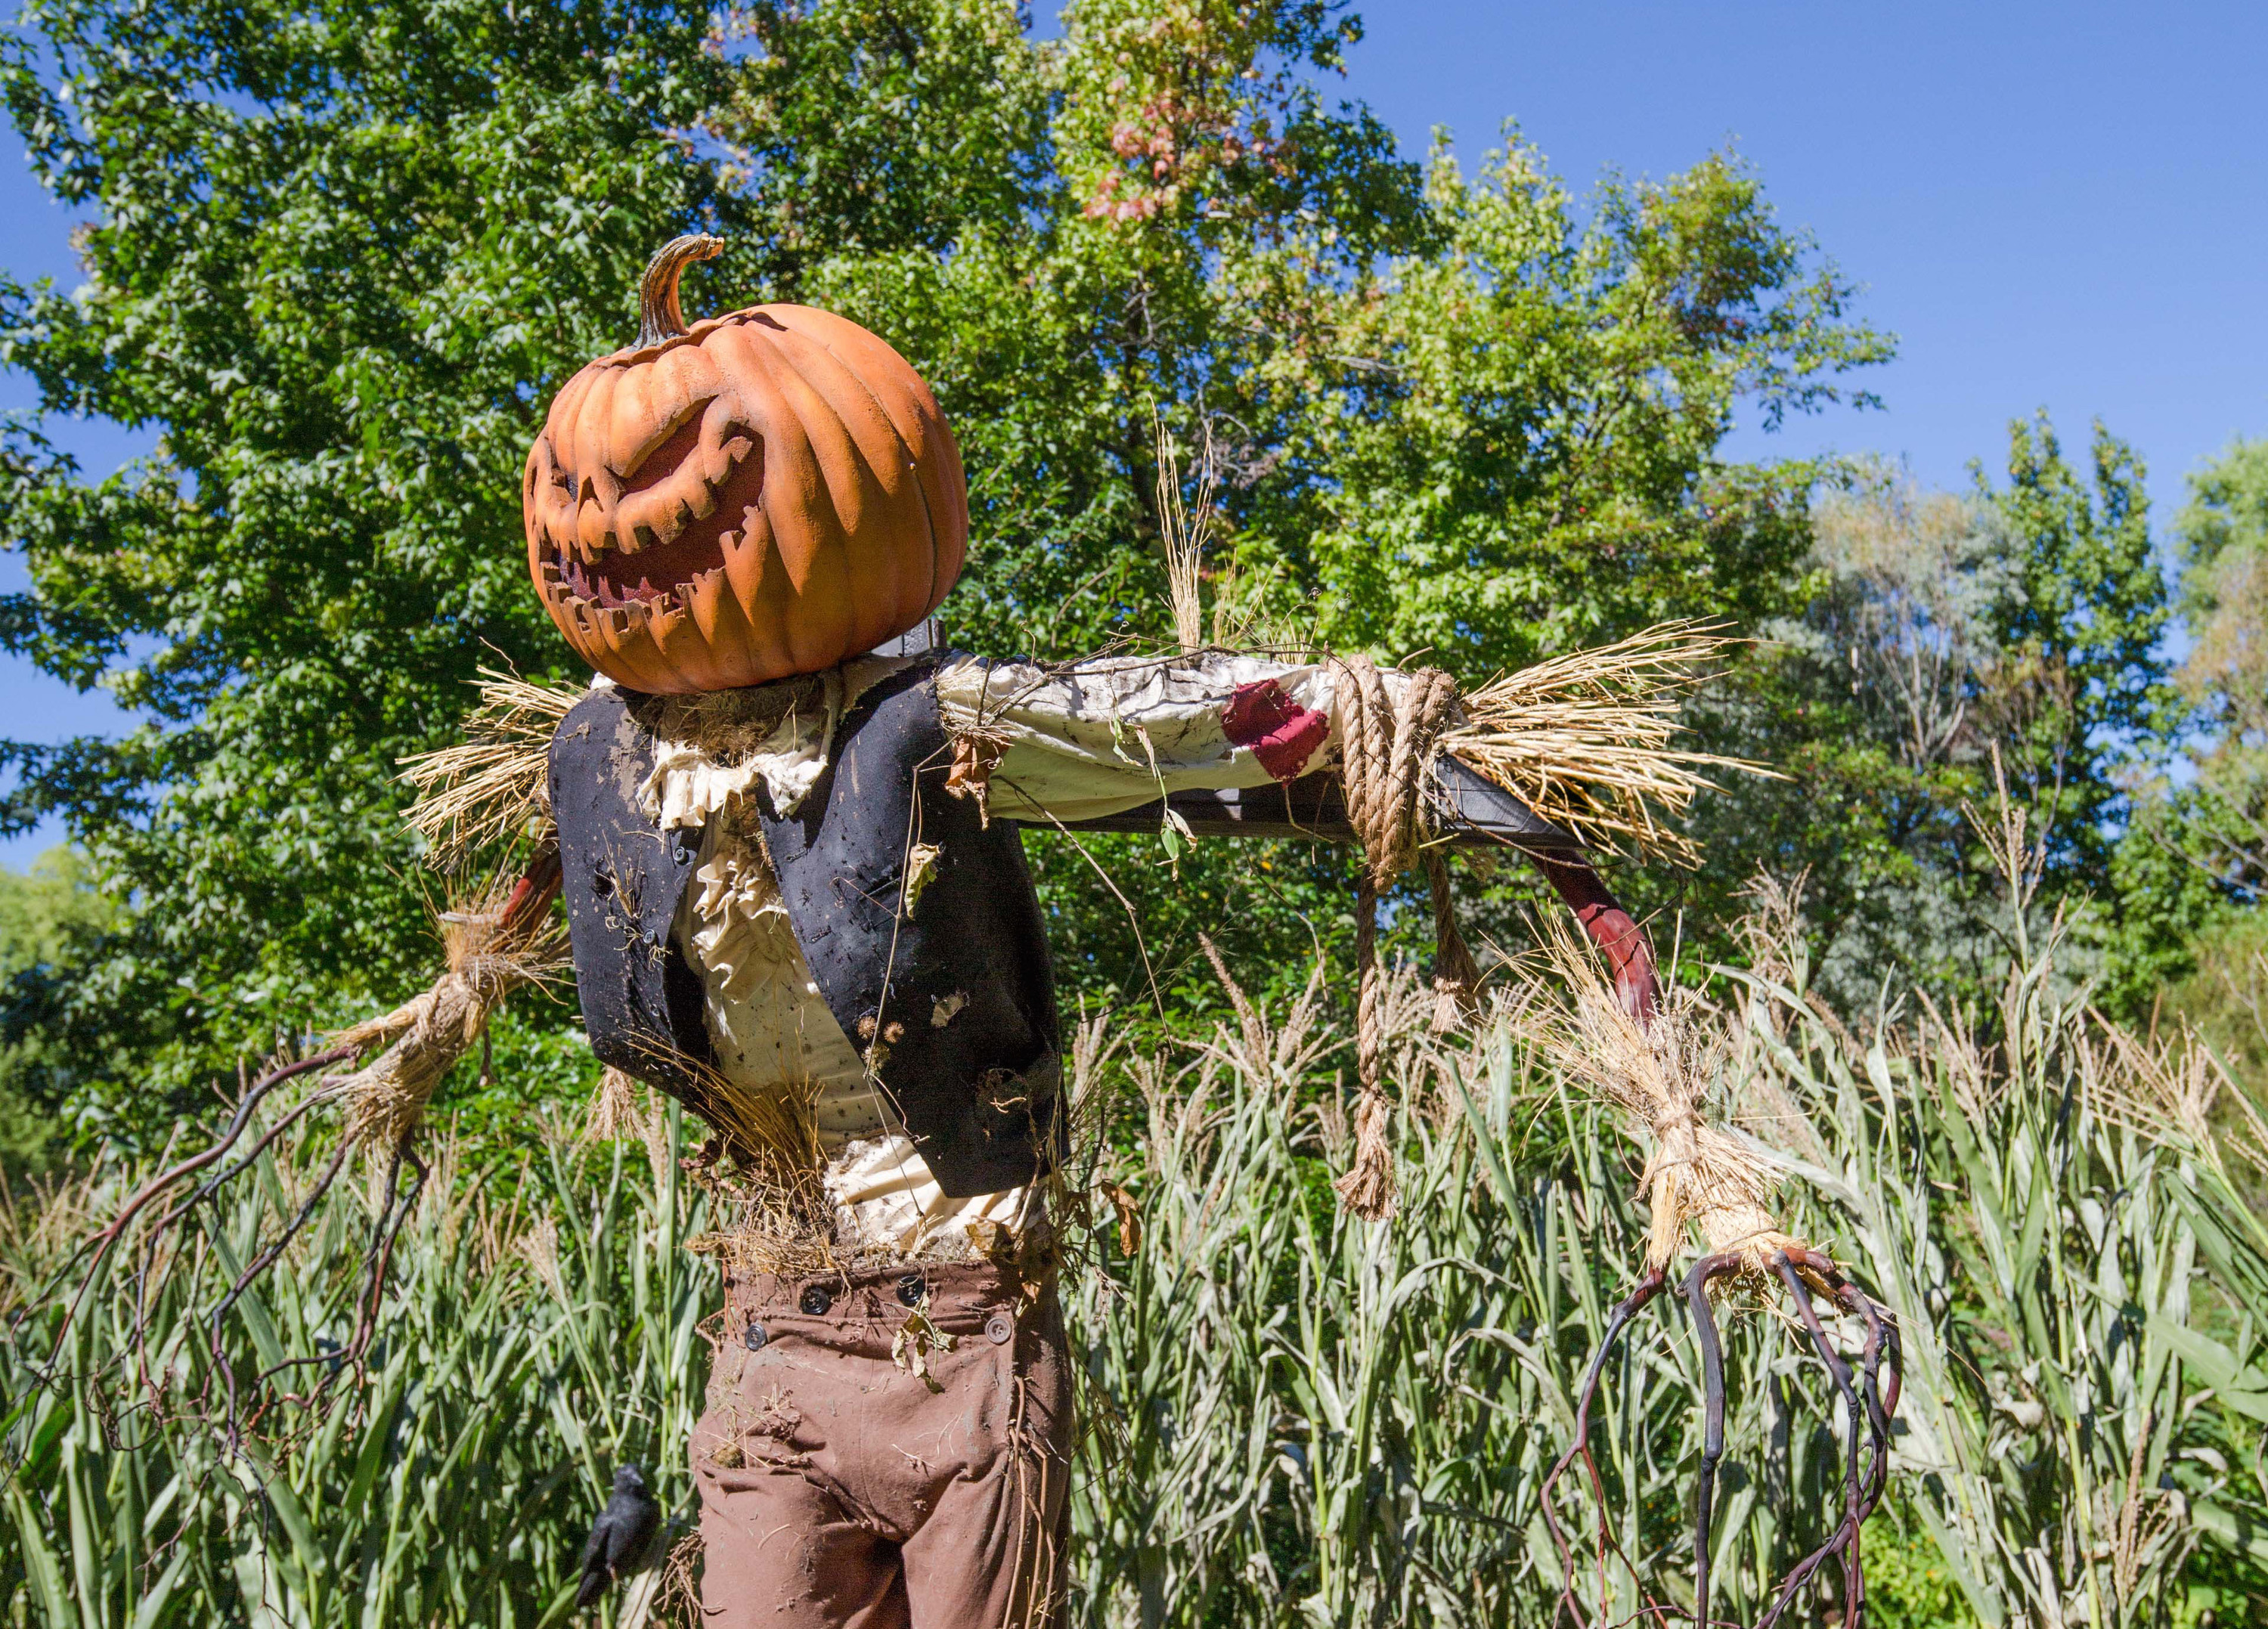 Spooky scarecrows are taking over the New York Botanical Garden